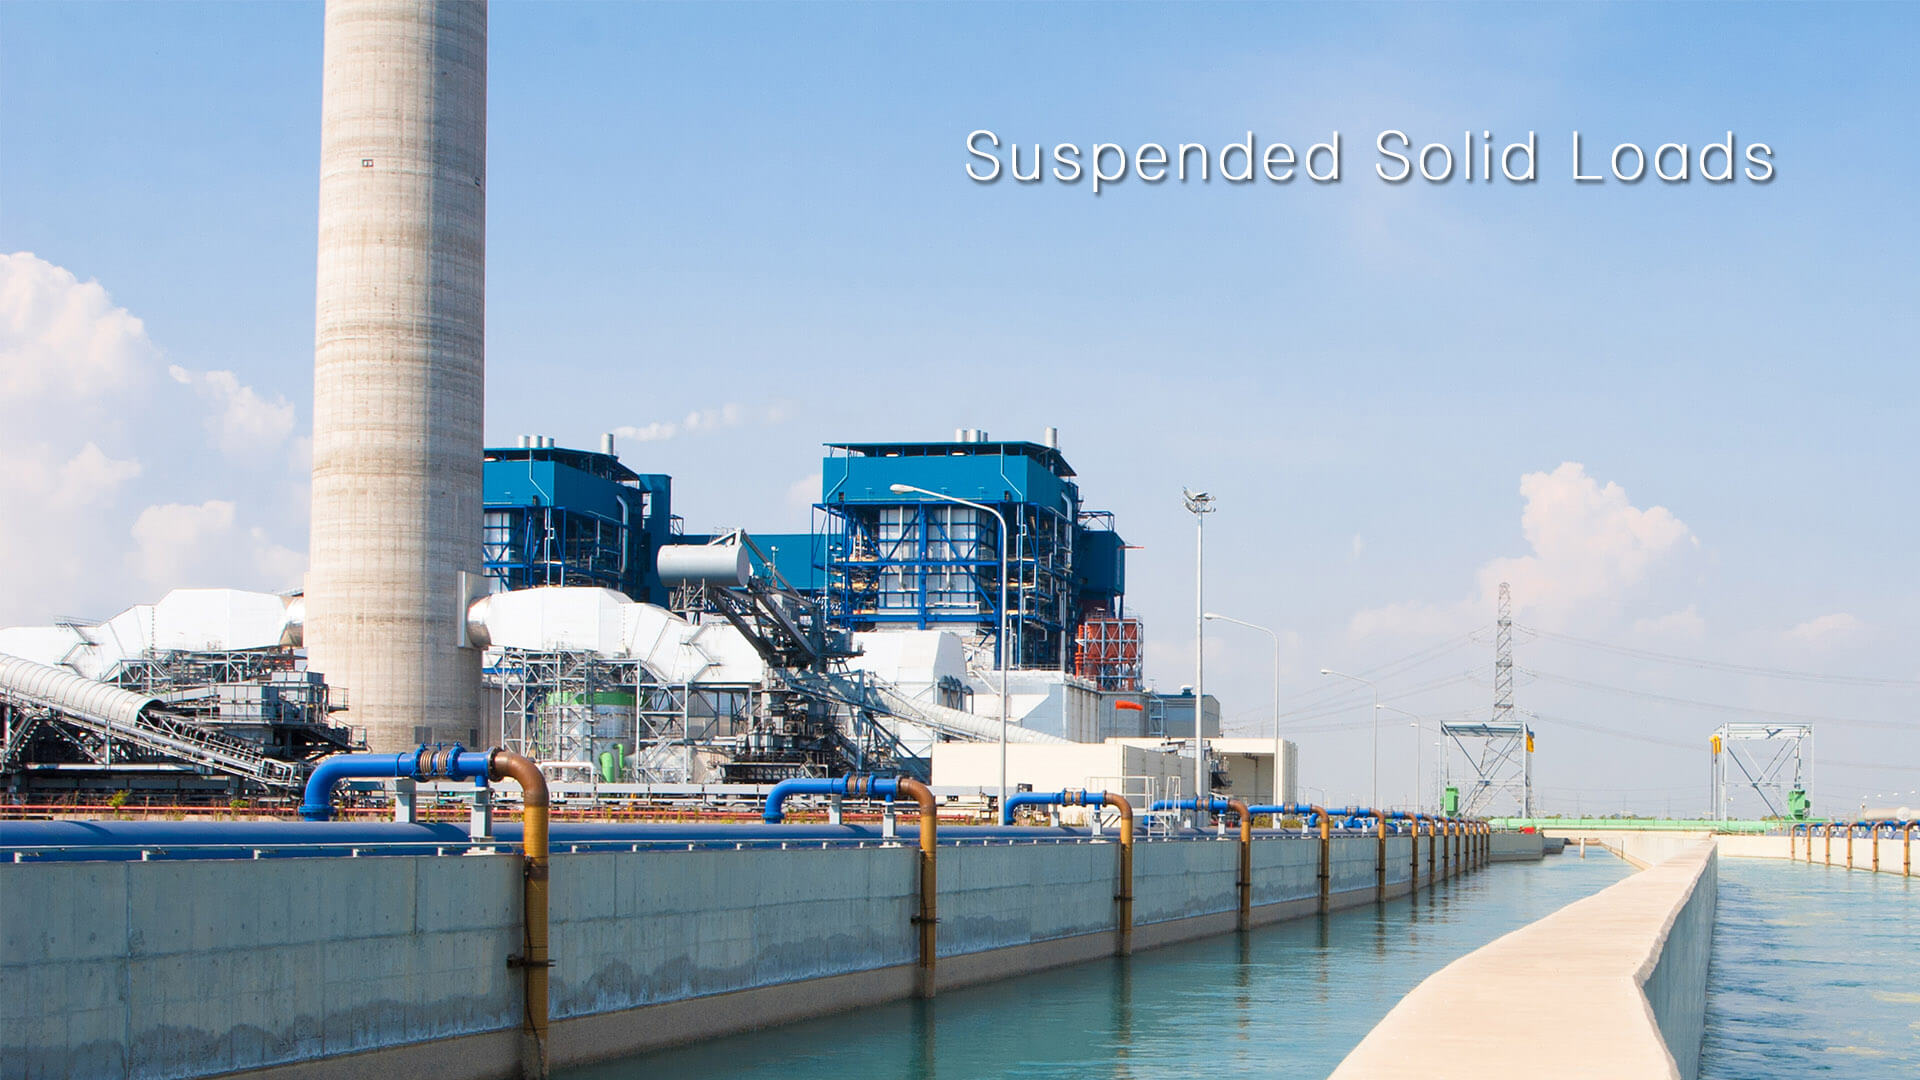 Suspended Solid Load